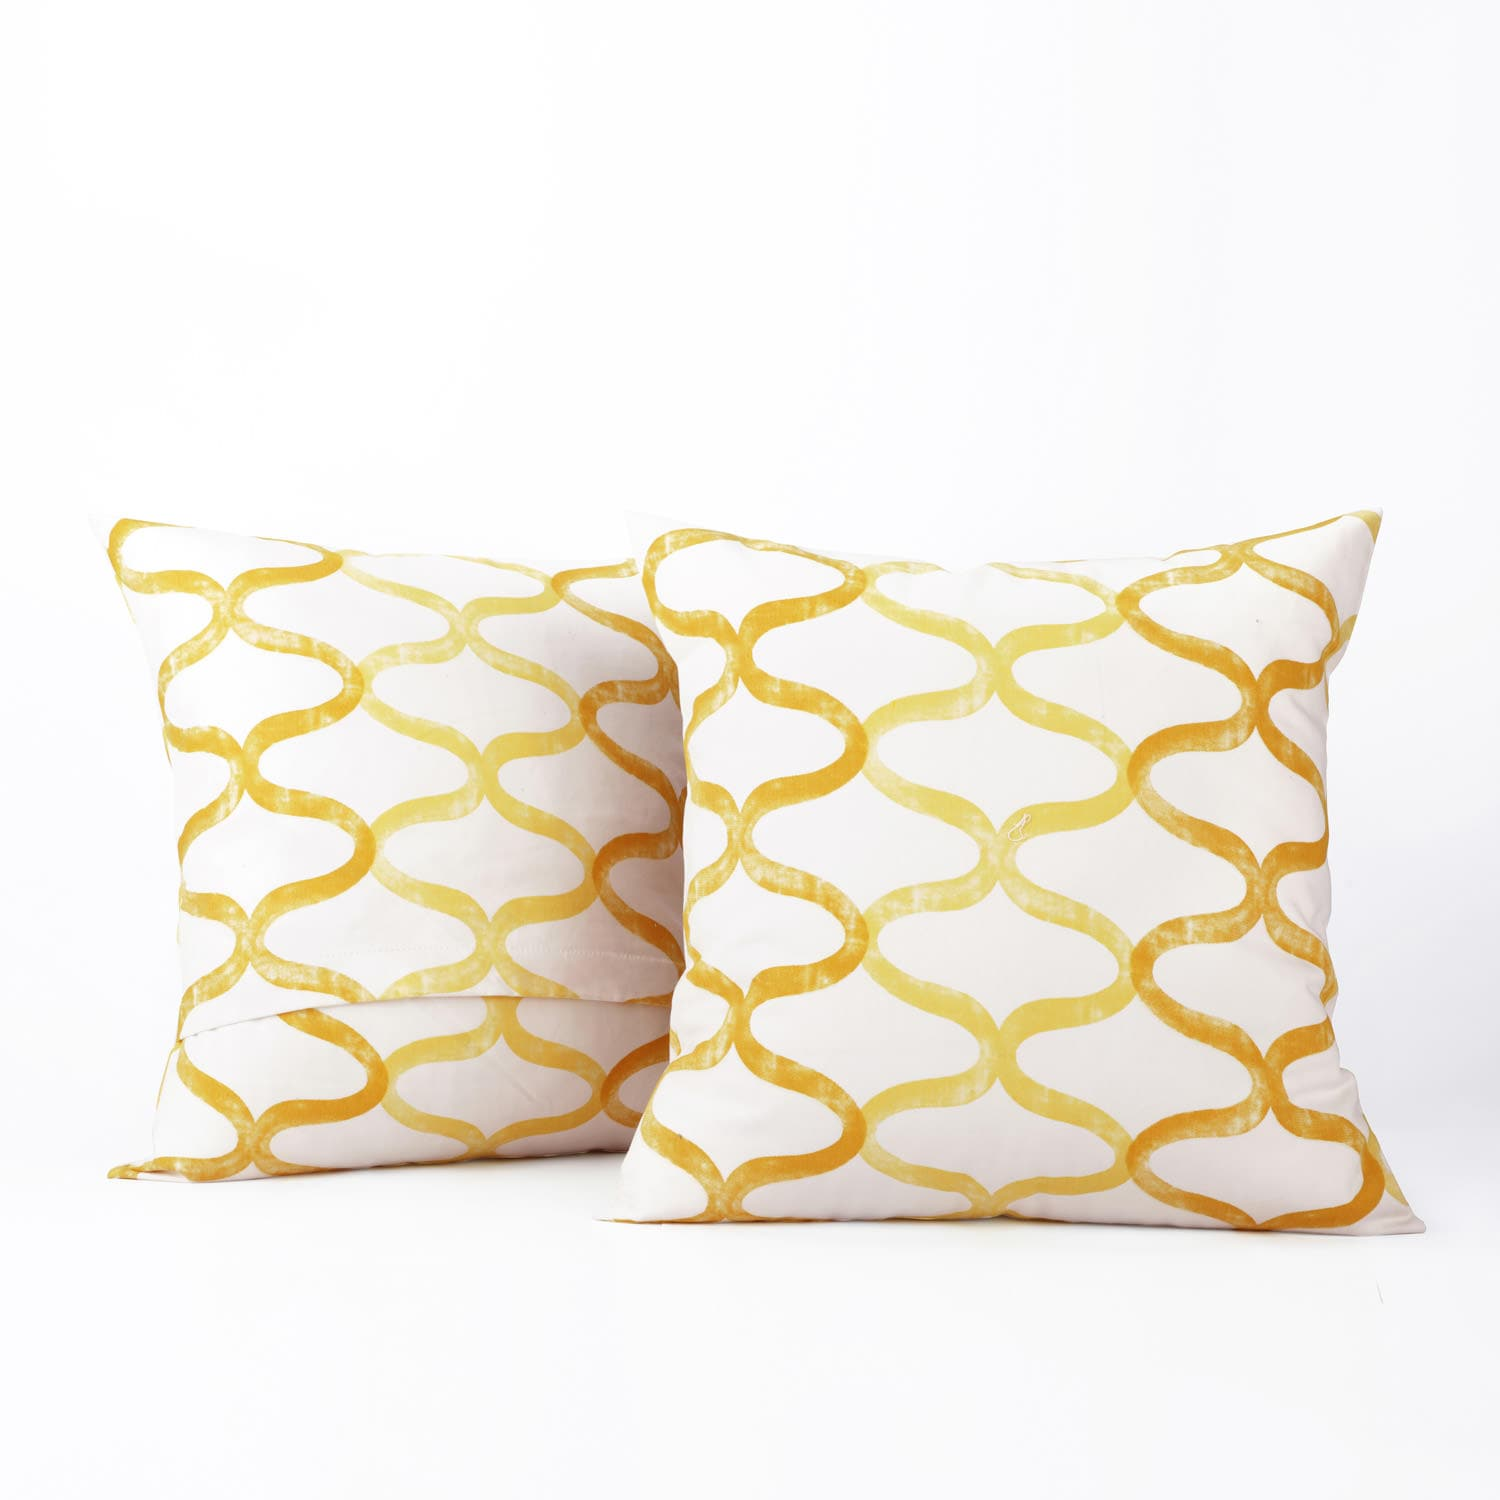 Illusions Yellow Printed Cotton Cover- PAIR